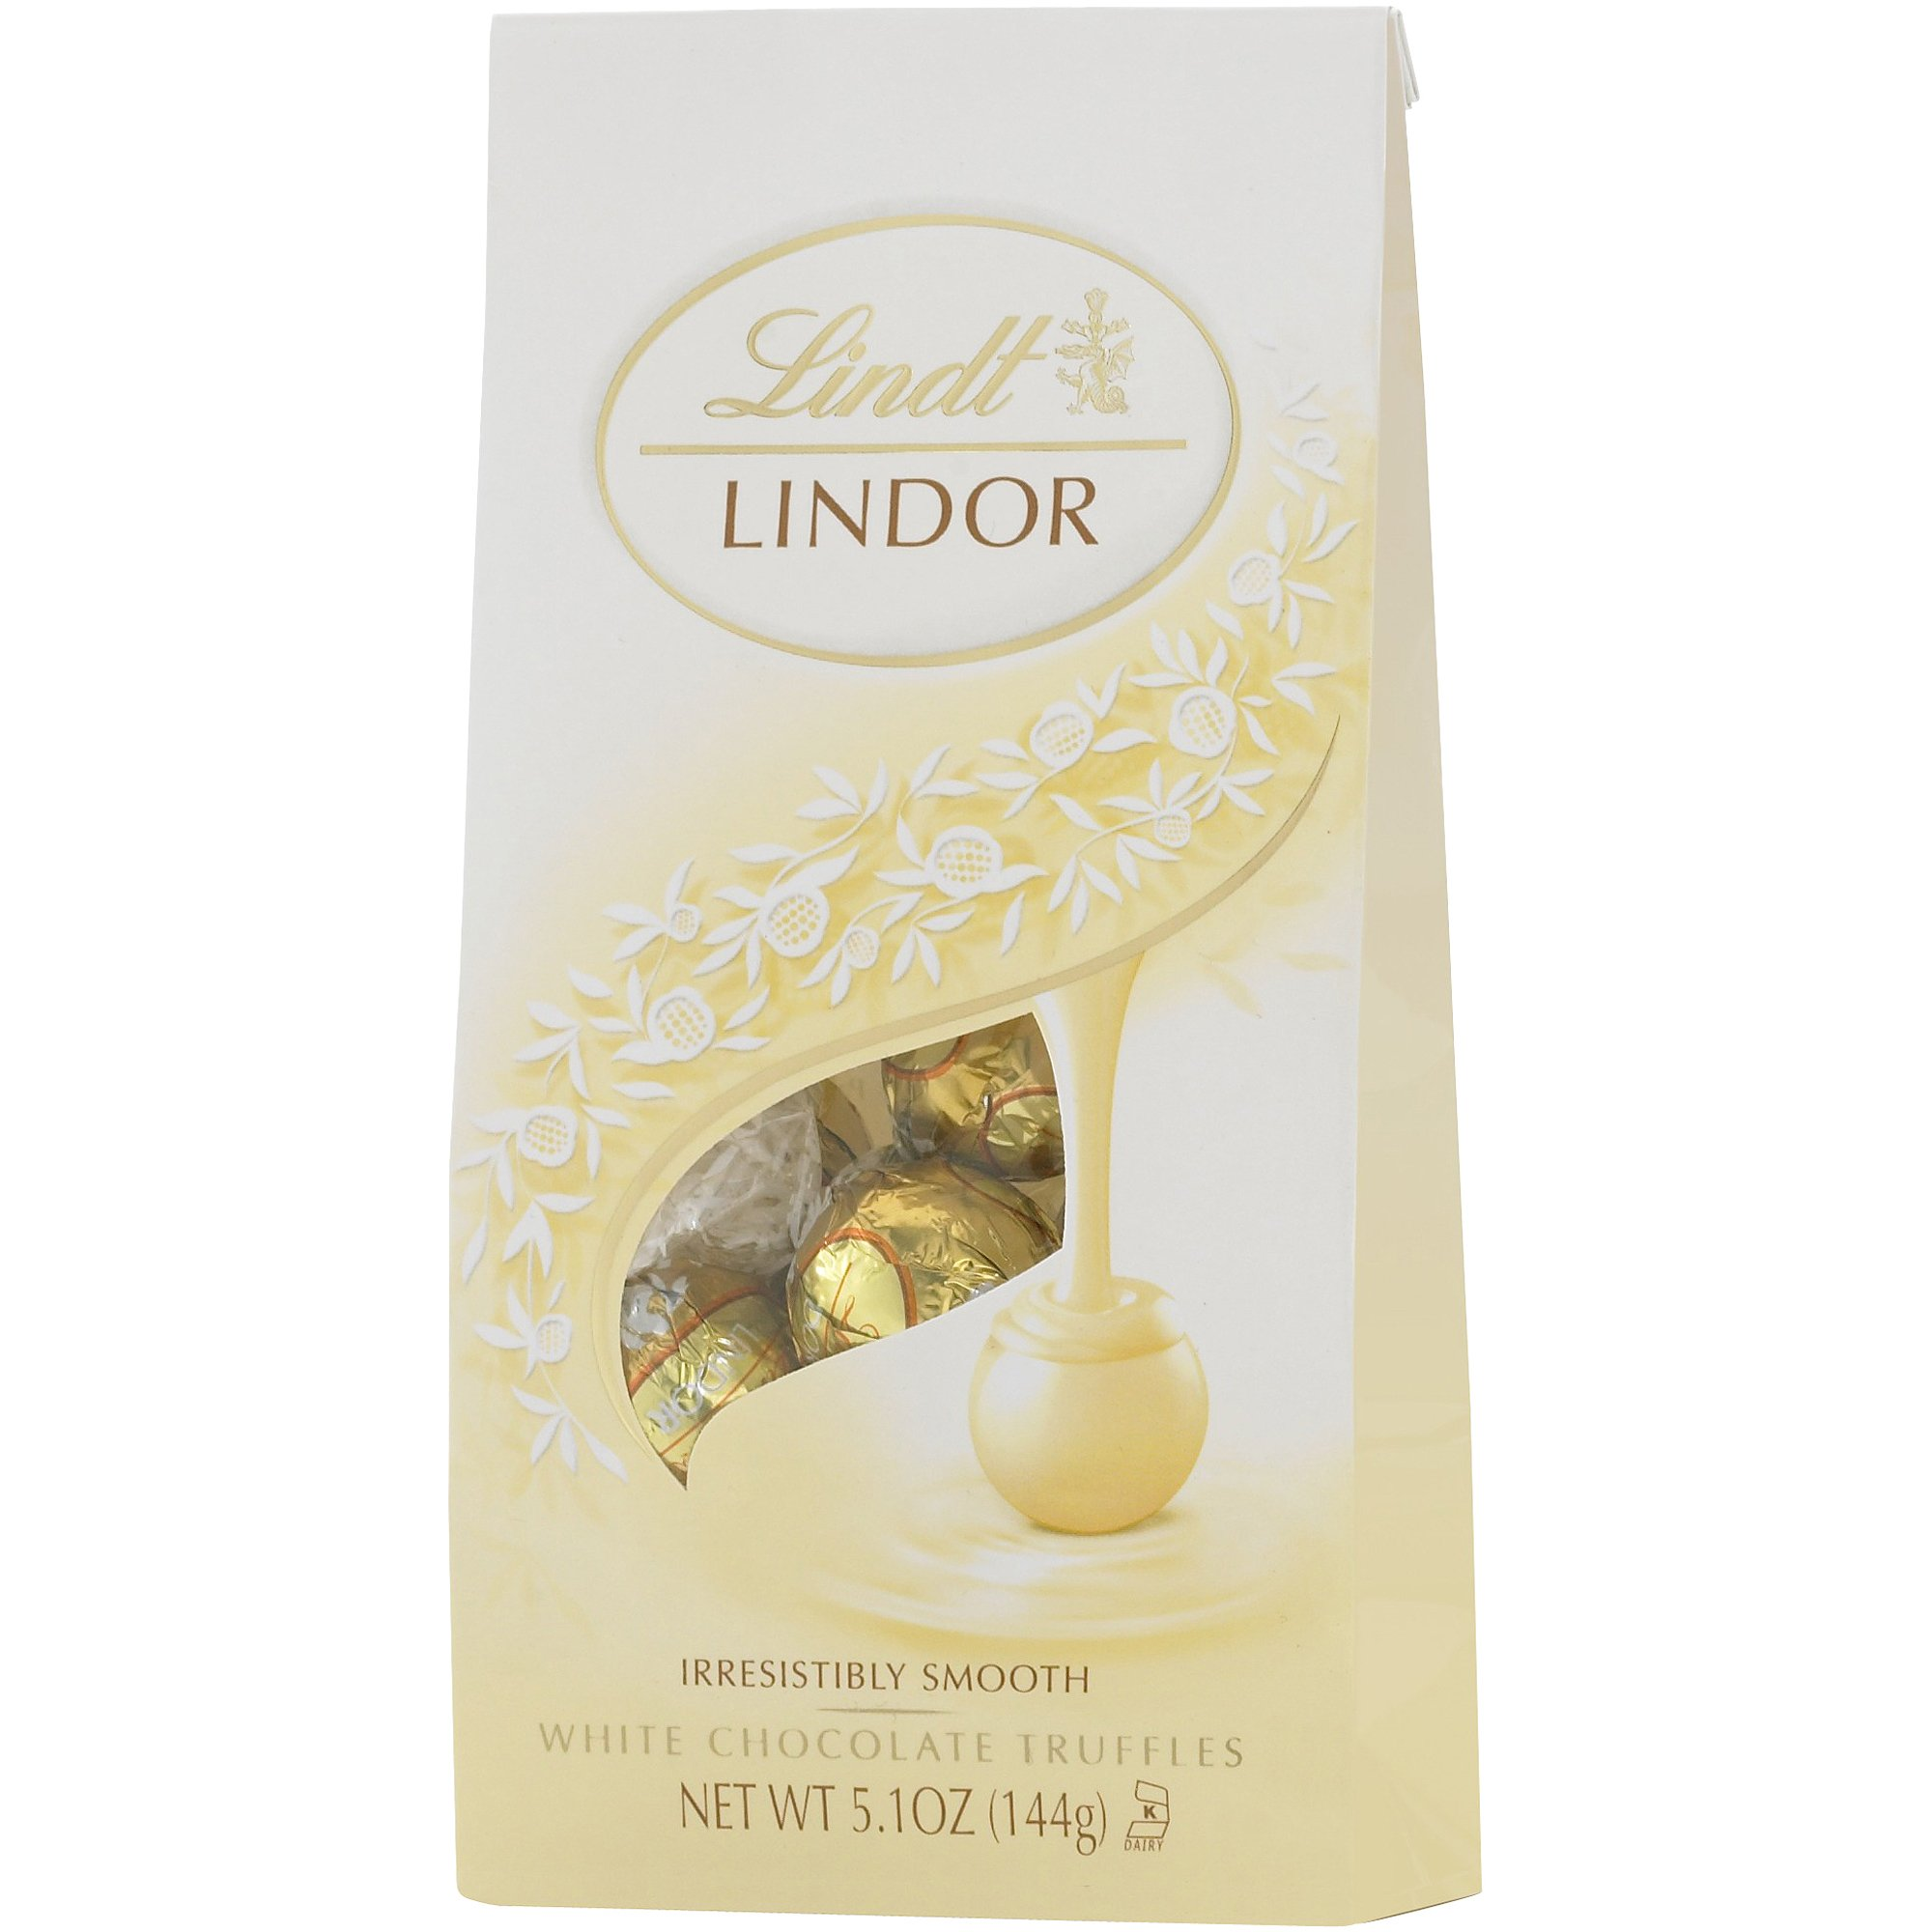 Lindt Lindor White Chocolate Truffle, 5.1 Ounce Bags (Pack of 2) by Lindt